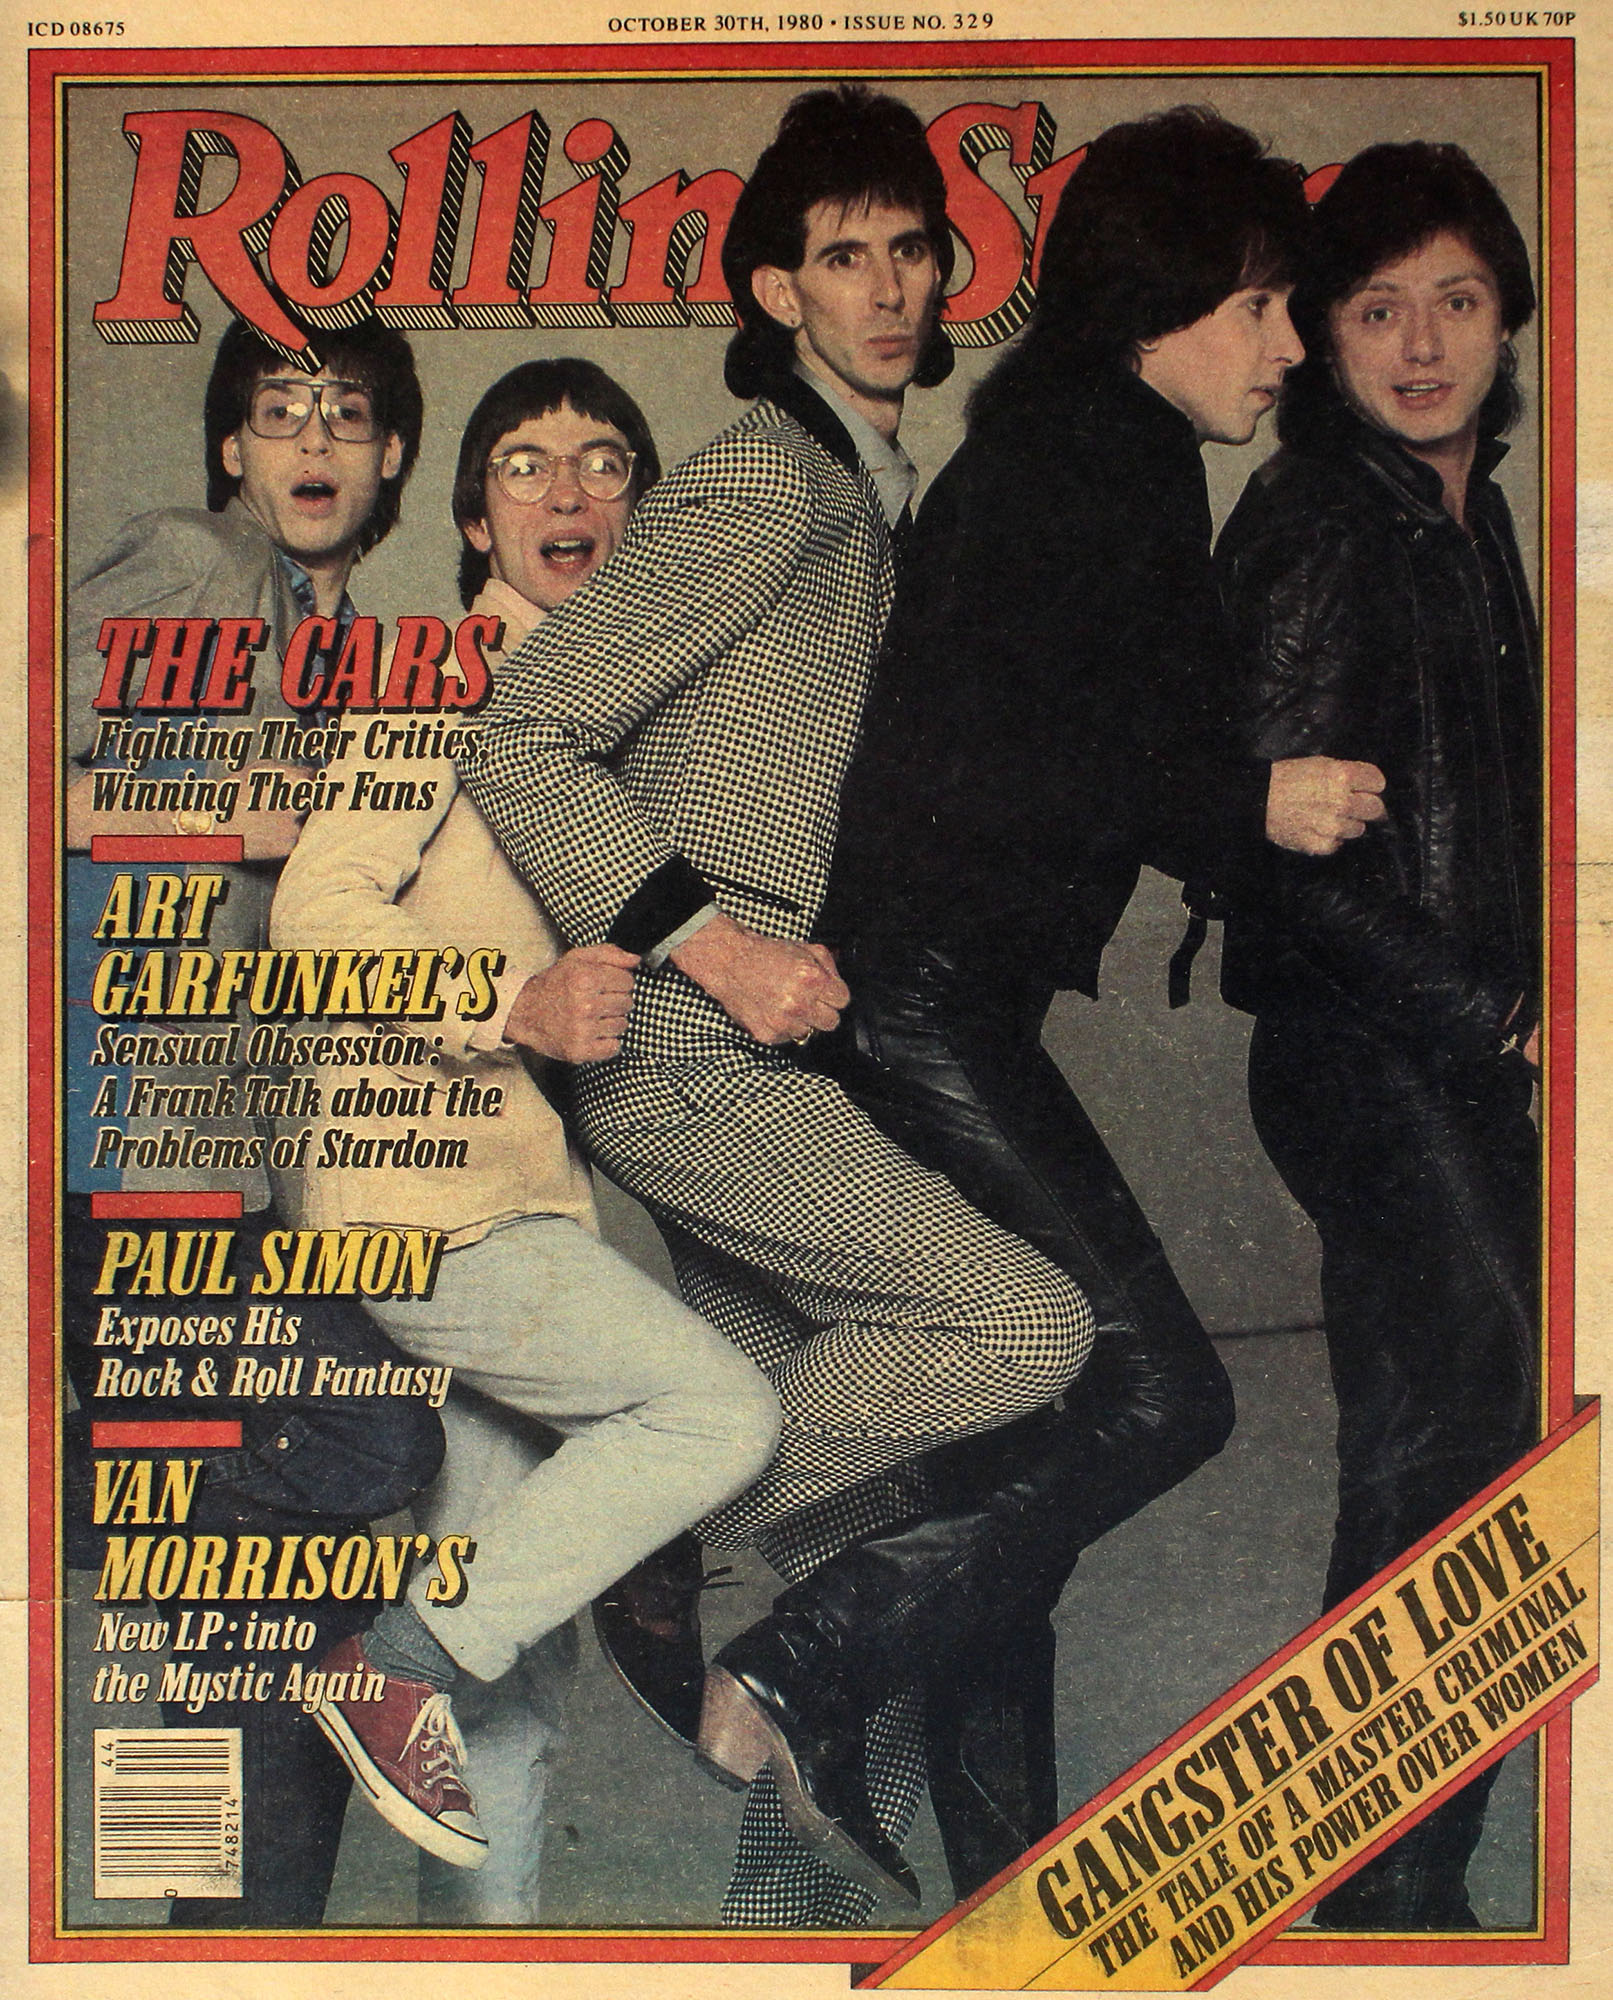 Rolling Stone Issue 329